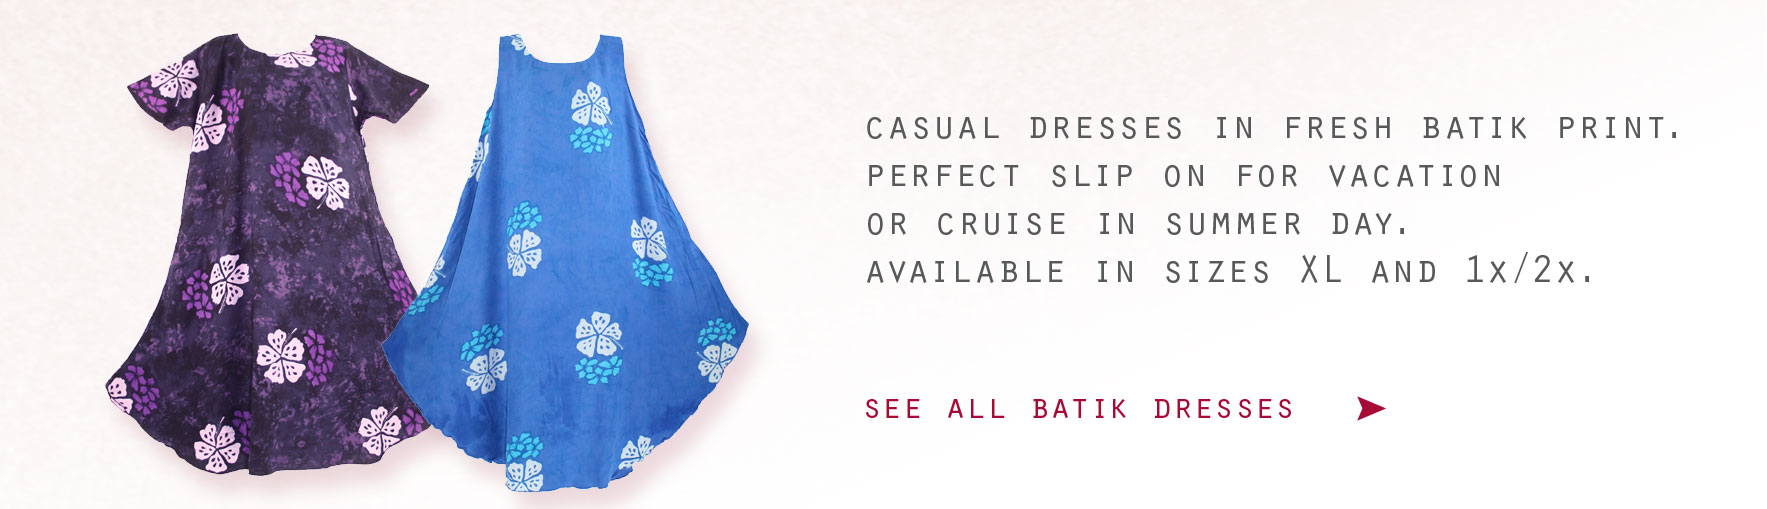 Plus Size Batik Dresses